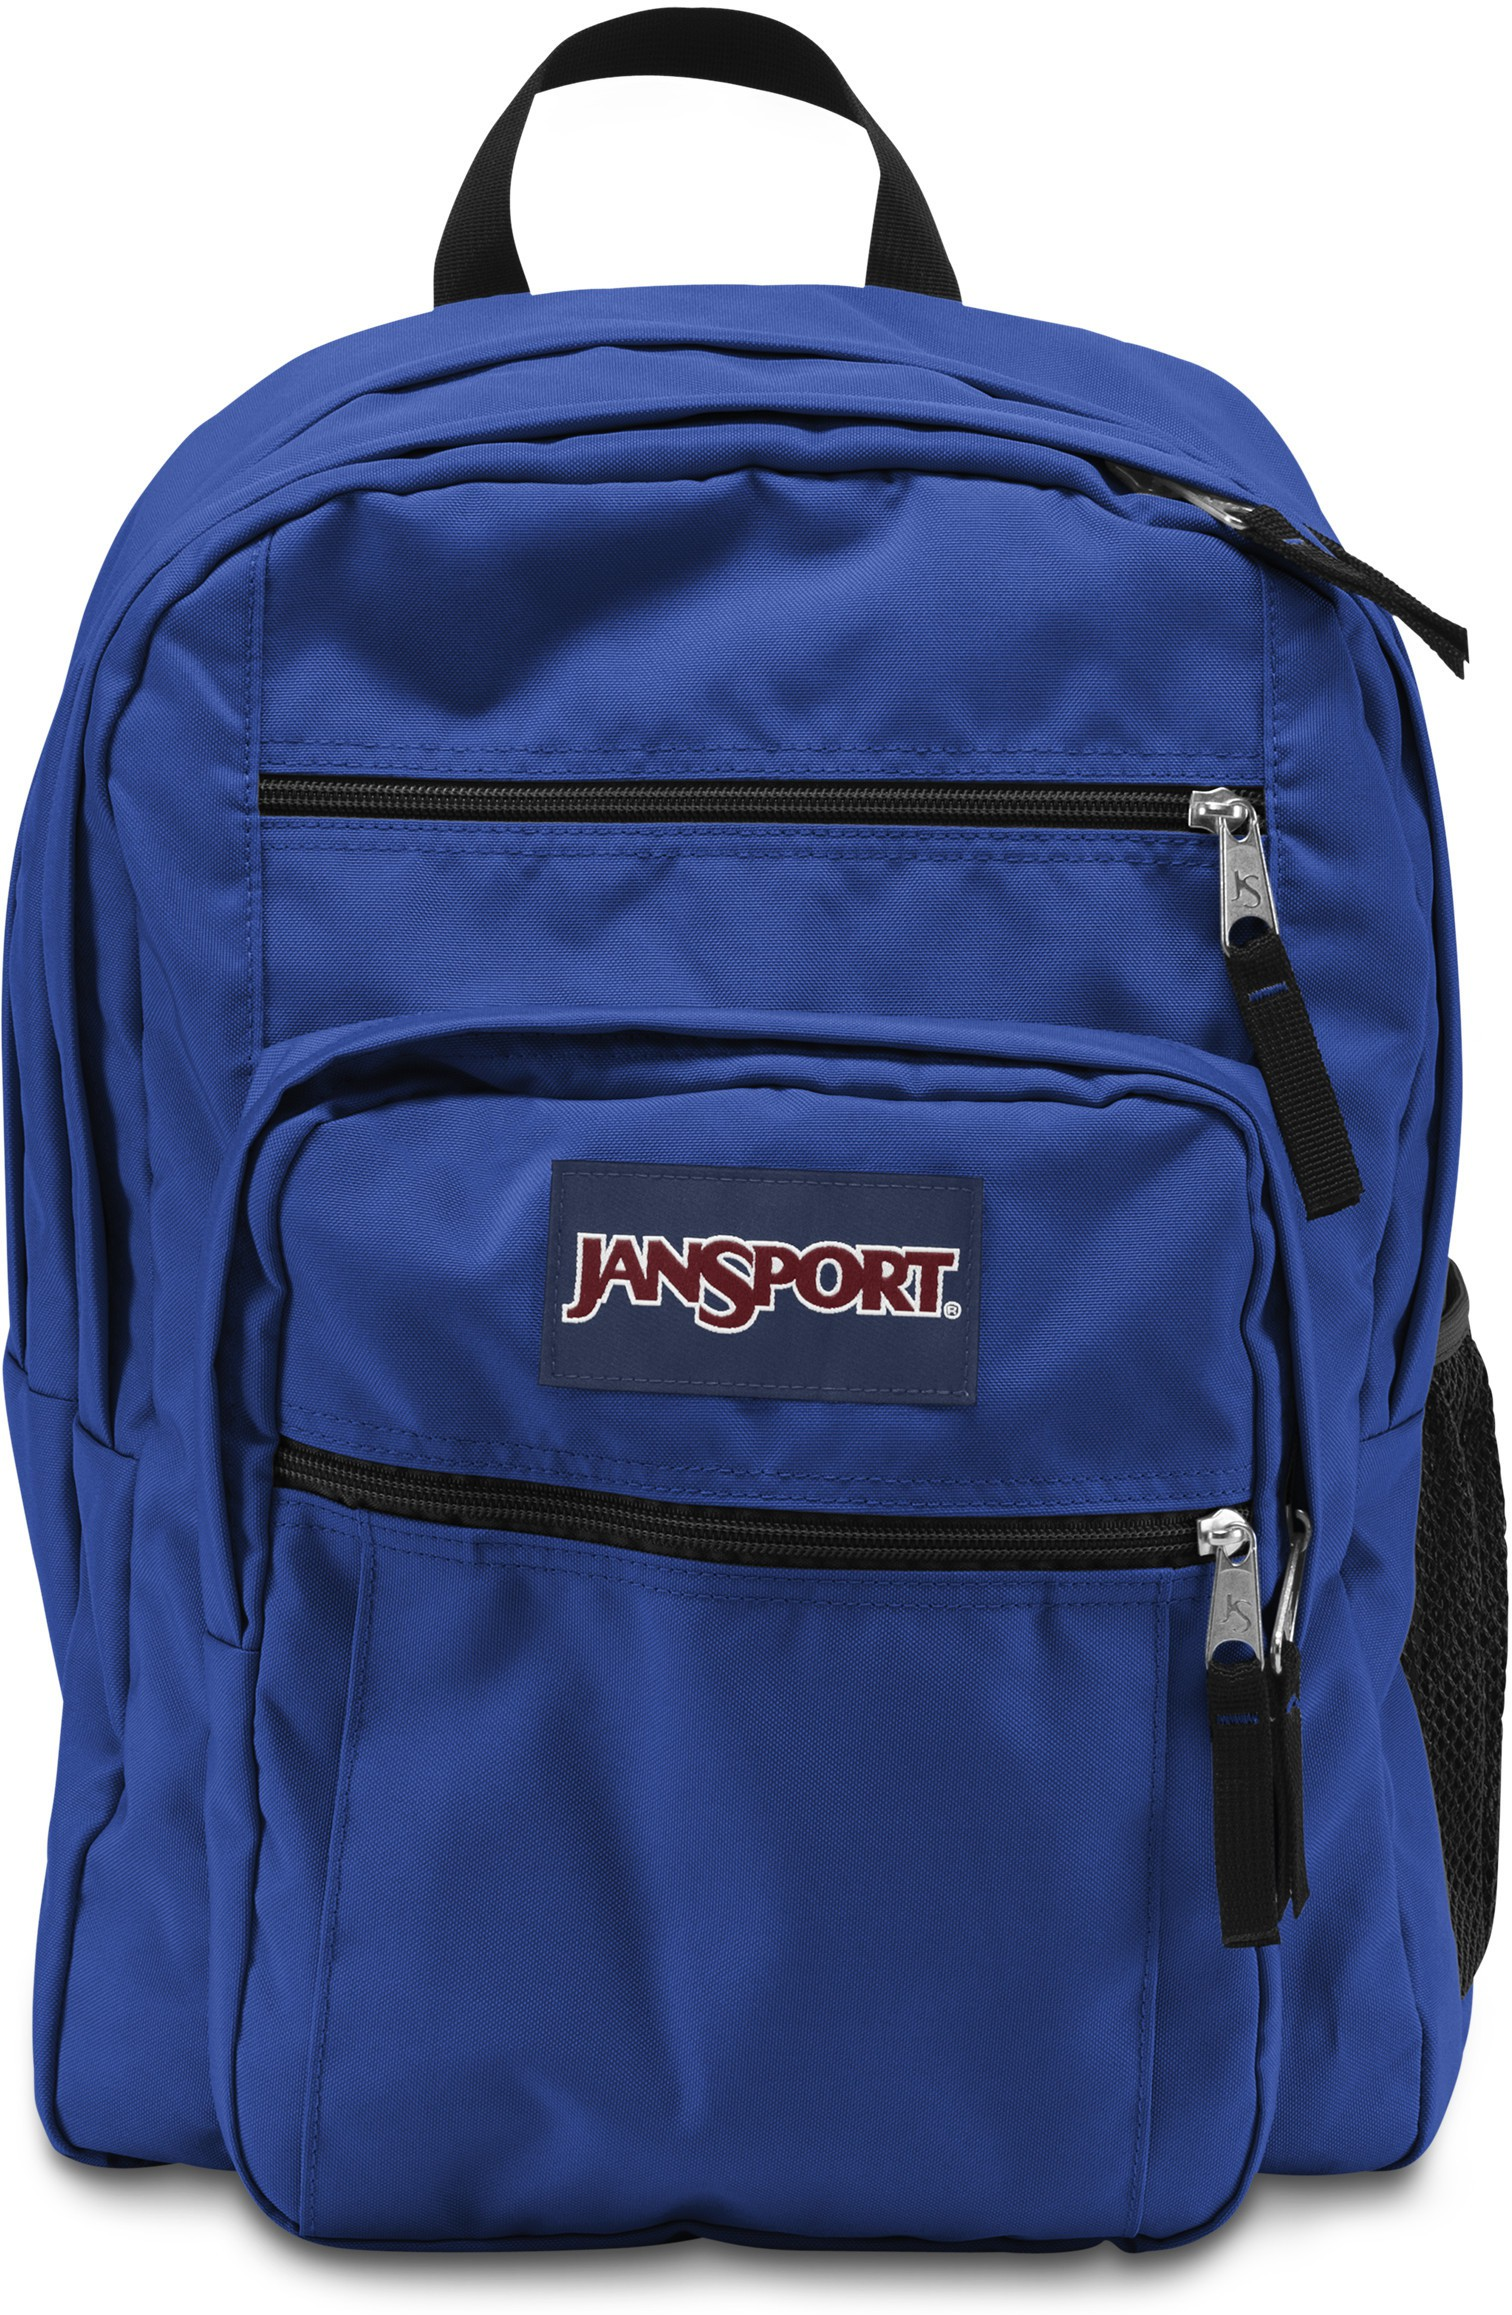 b2255306de Jansport Backpacks Retailers - Crazy Backpacks